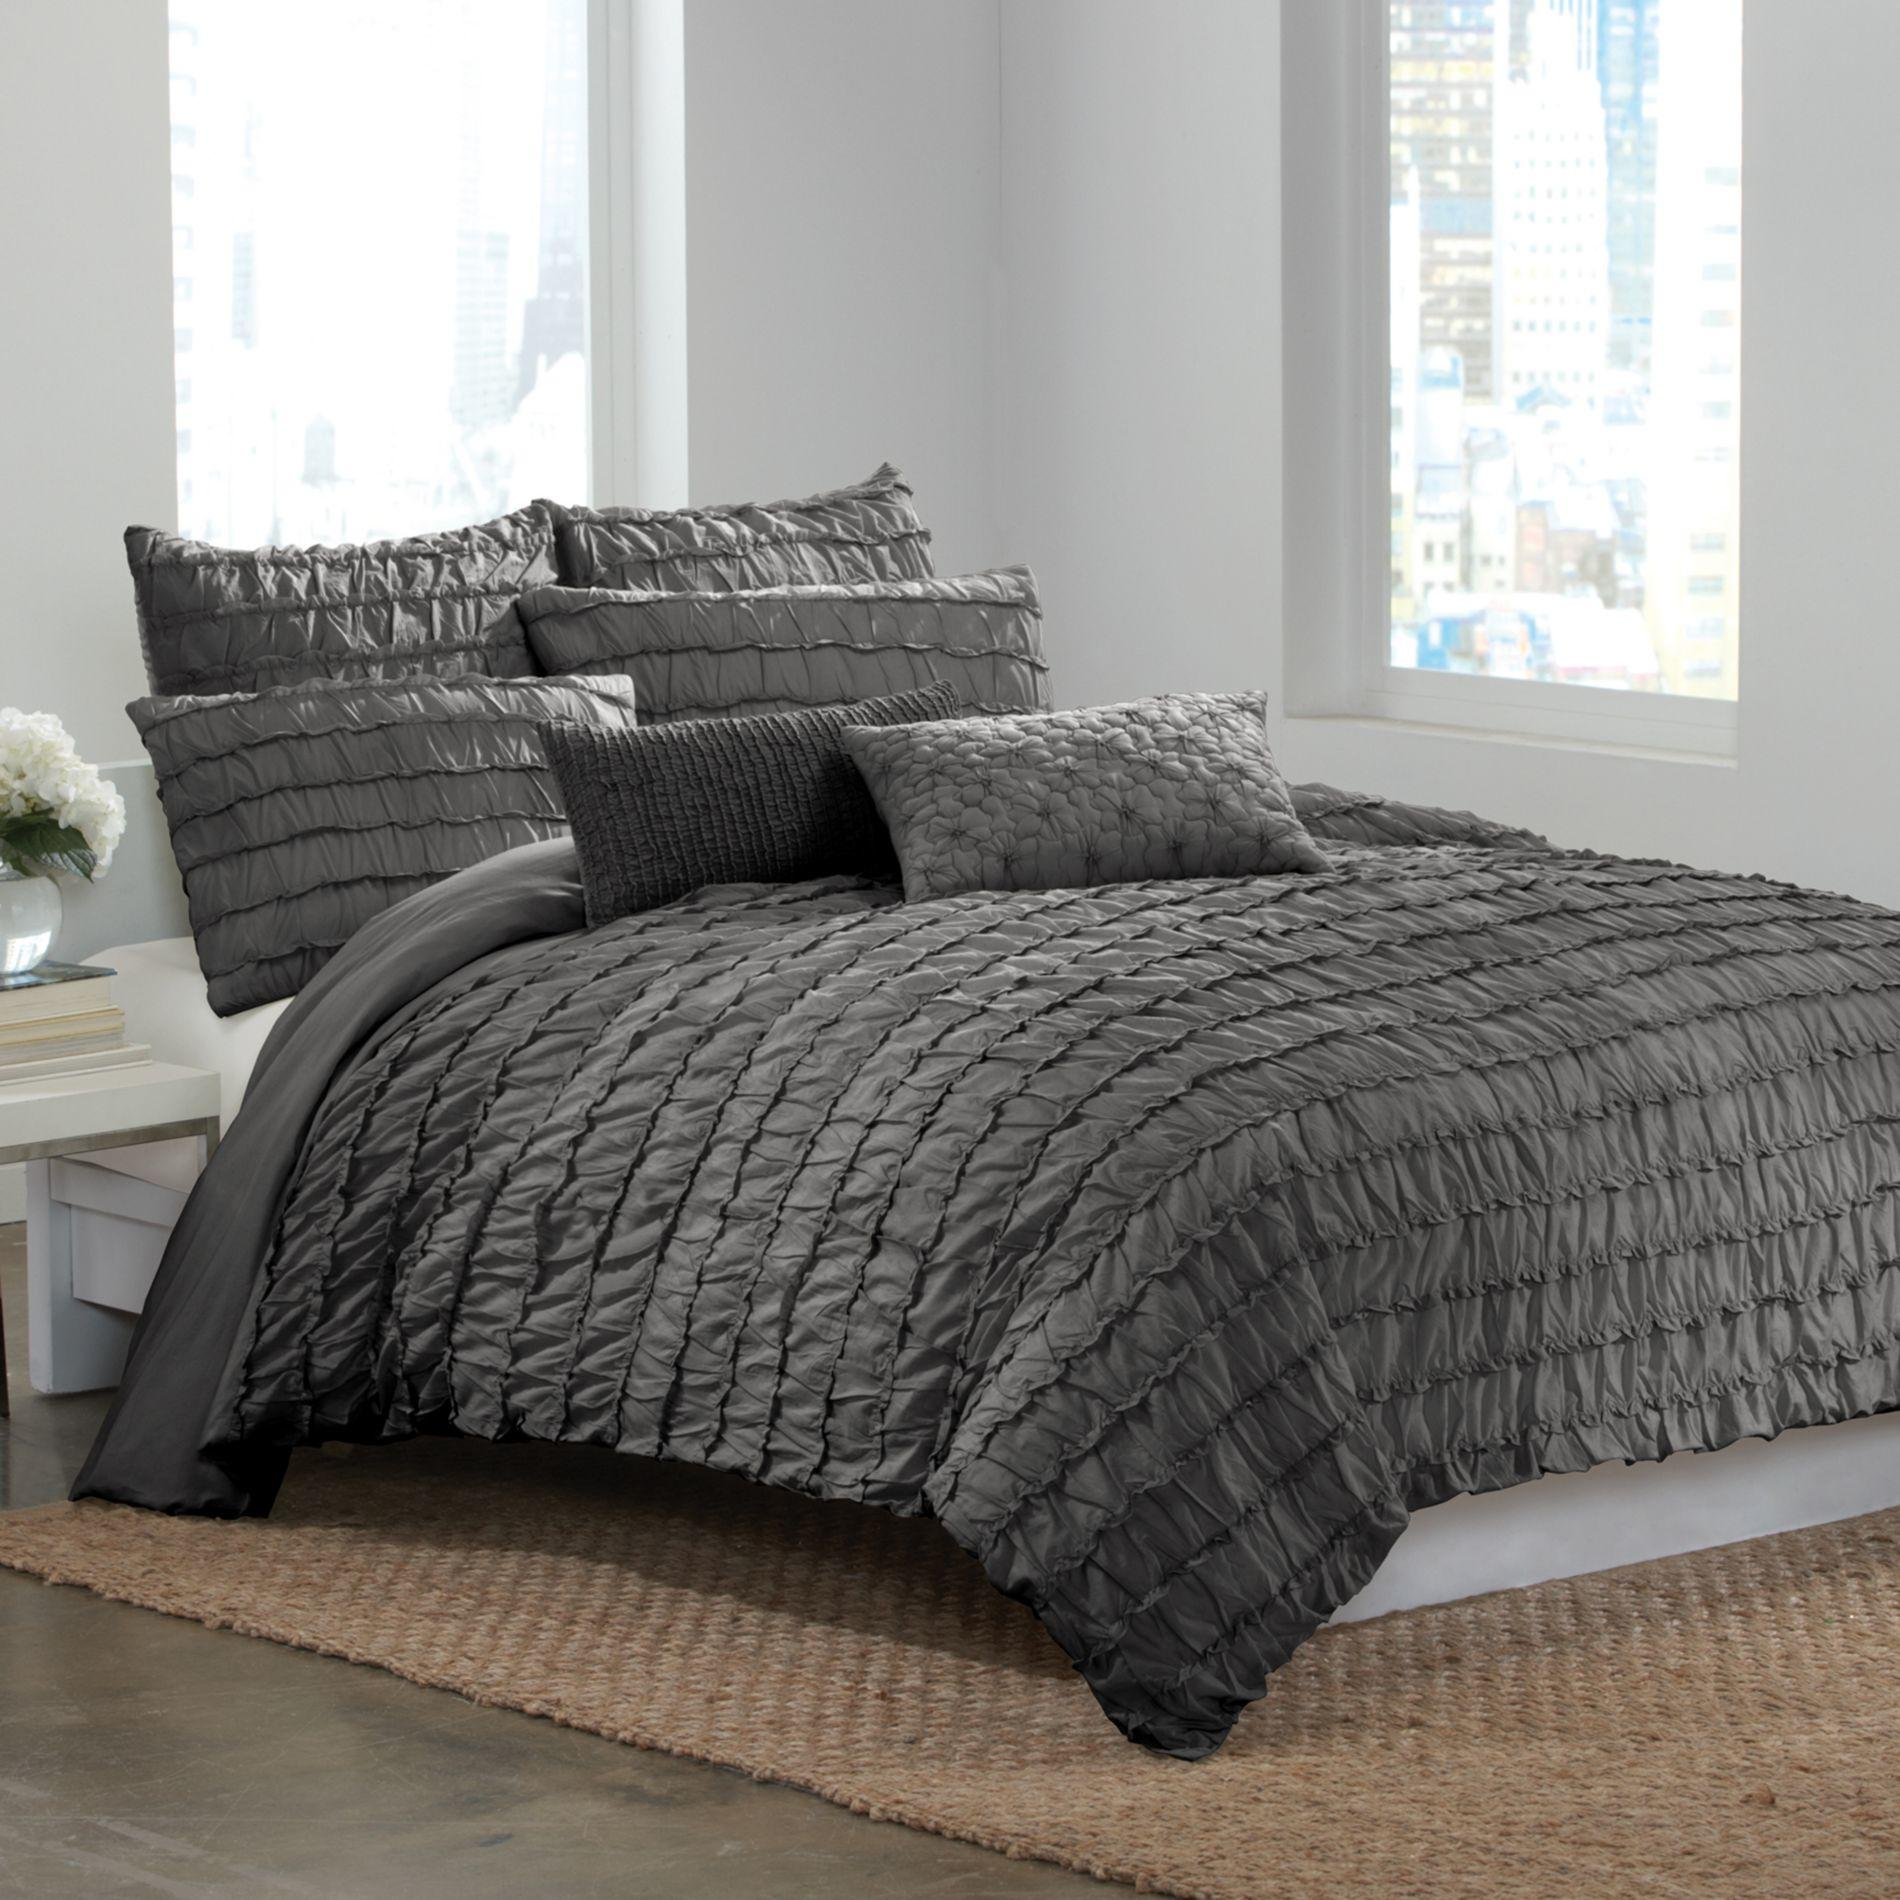 Dkny 174 Ruffle Wave Charcoal Duvet Cover From Bed Bath Amp Beyond